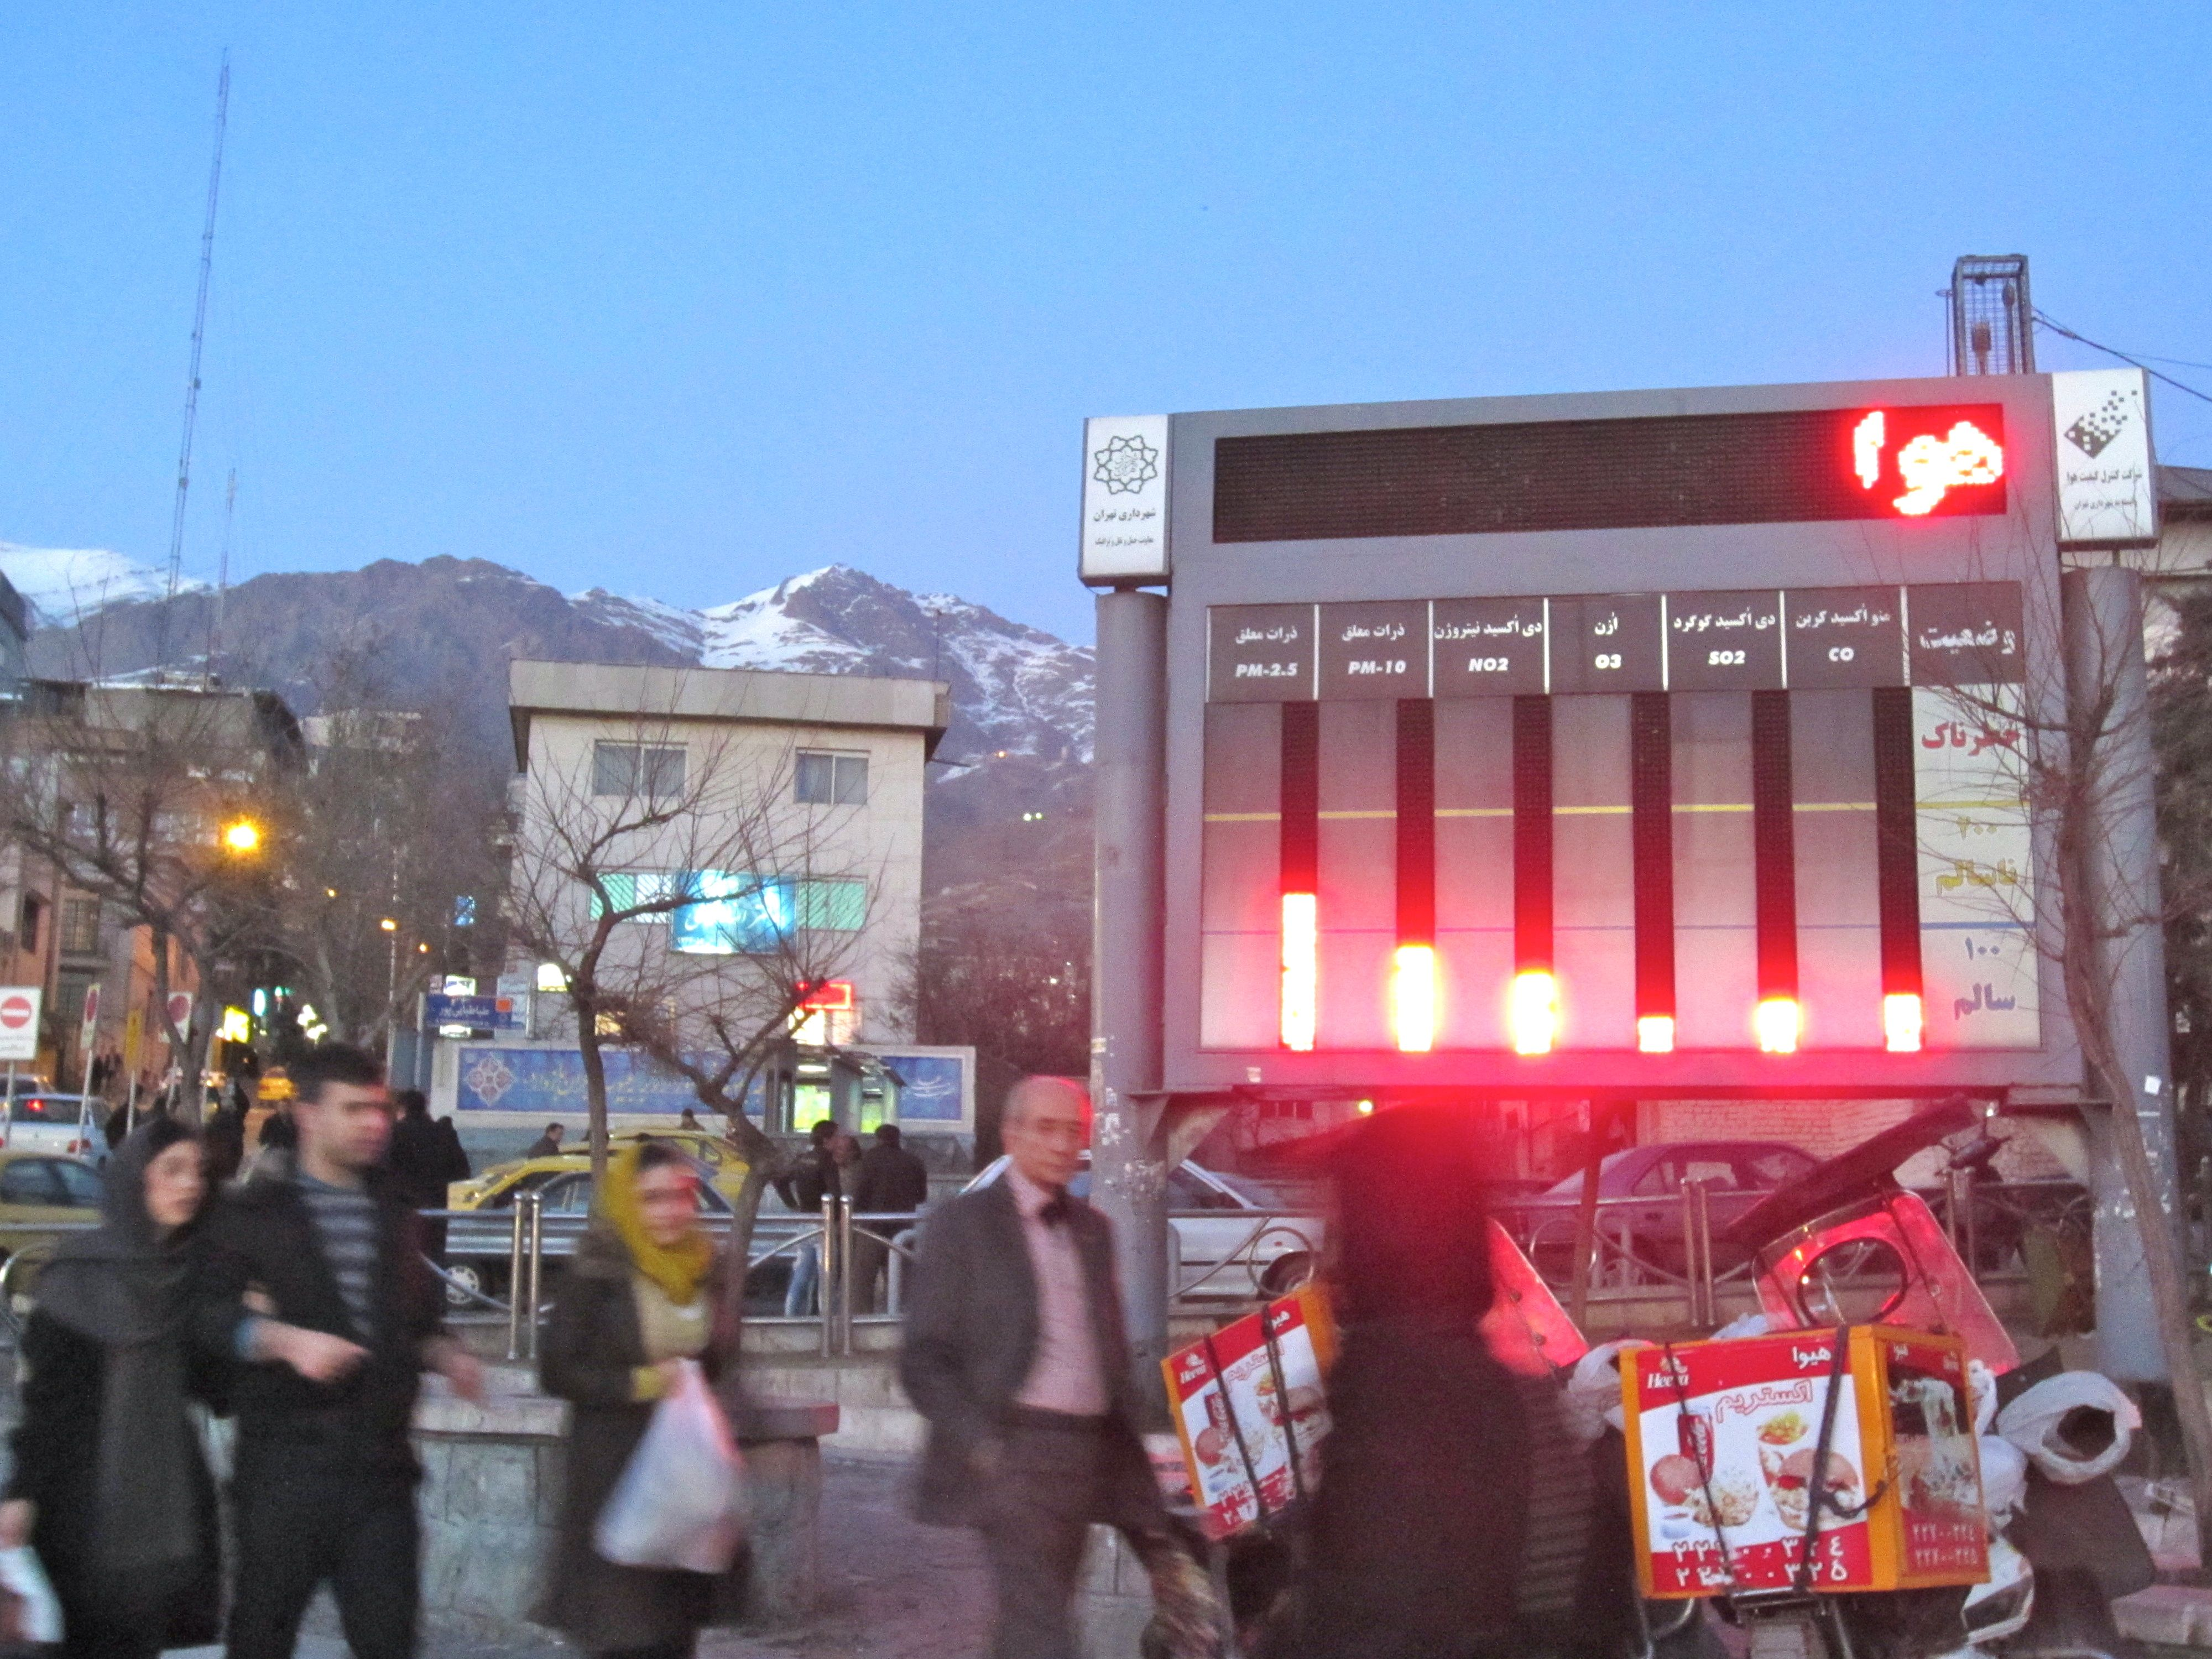 """An electronic display monitors air quality in Tajrish Square, north Tehran. The screen displays levels of various toxins in the air alongside reminders to utilize public transportation. The word at the top is the beginning of a reminder, though so far only the war """"air"""" is visible."""